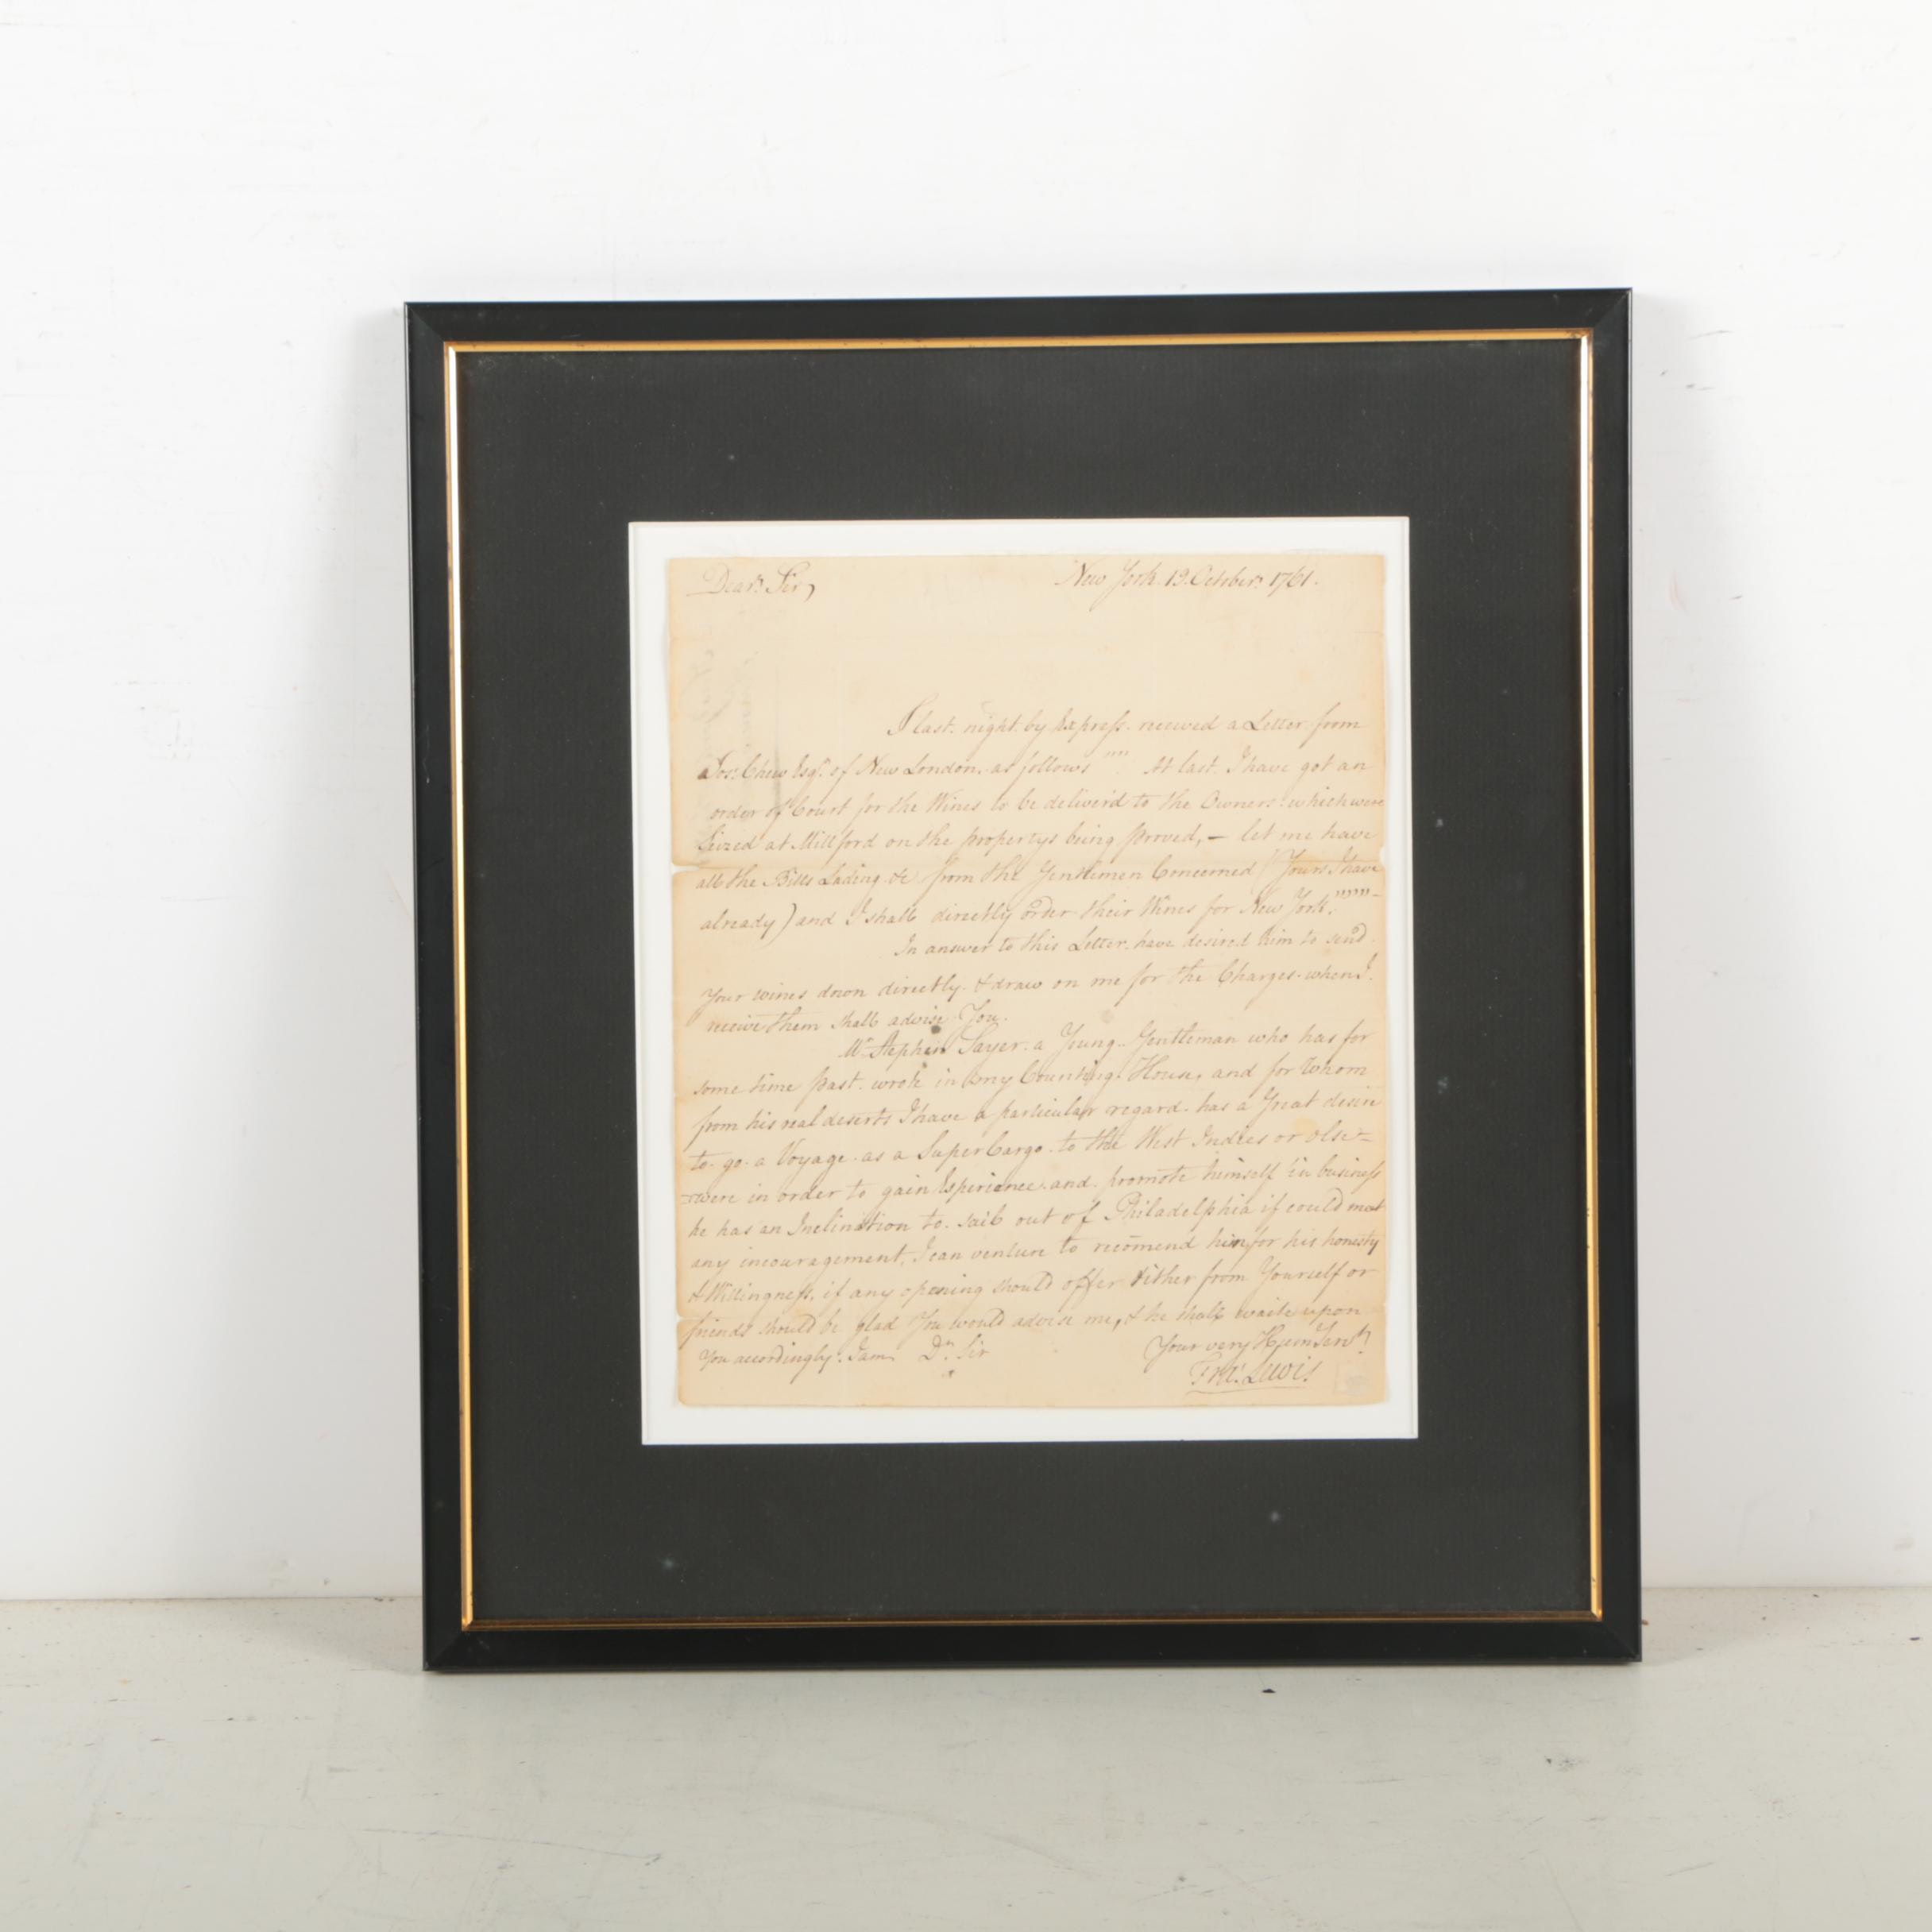 Francis Lewis Correspondence Document Signed October 19, 1761